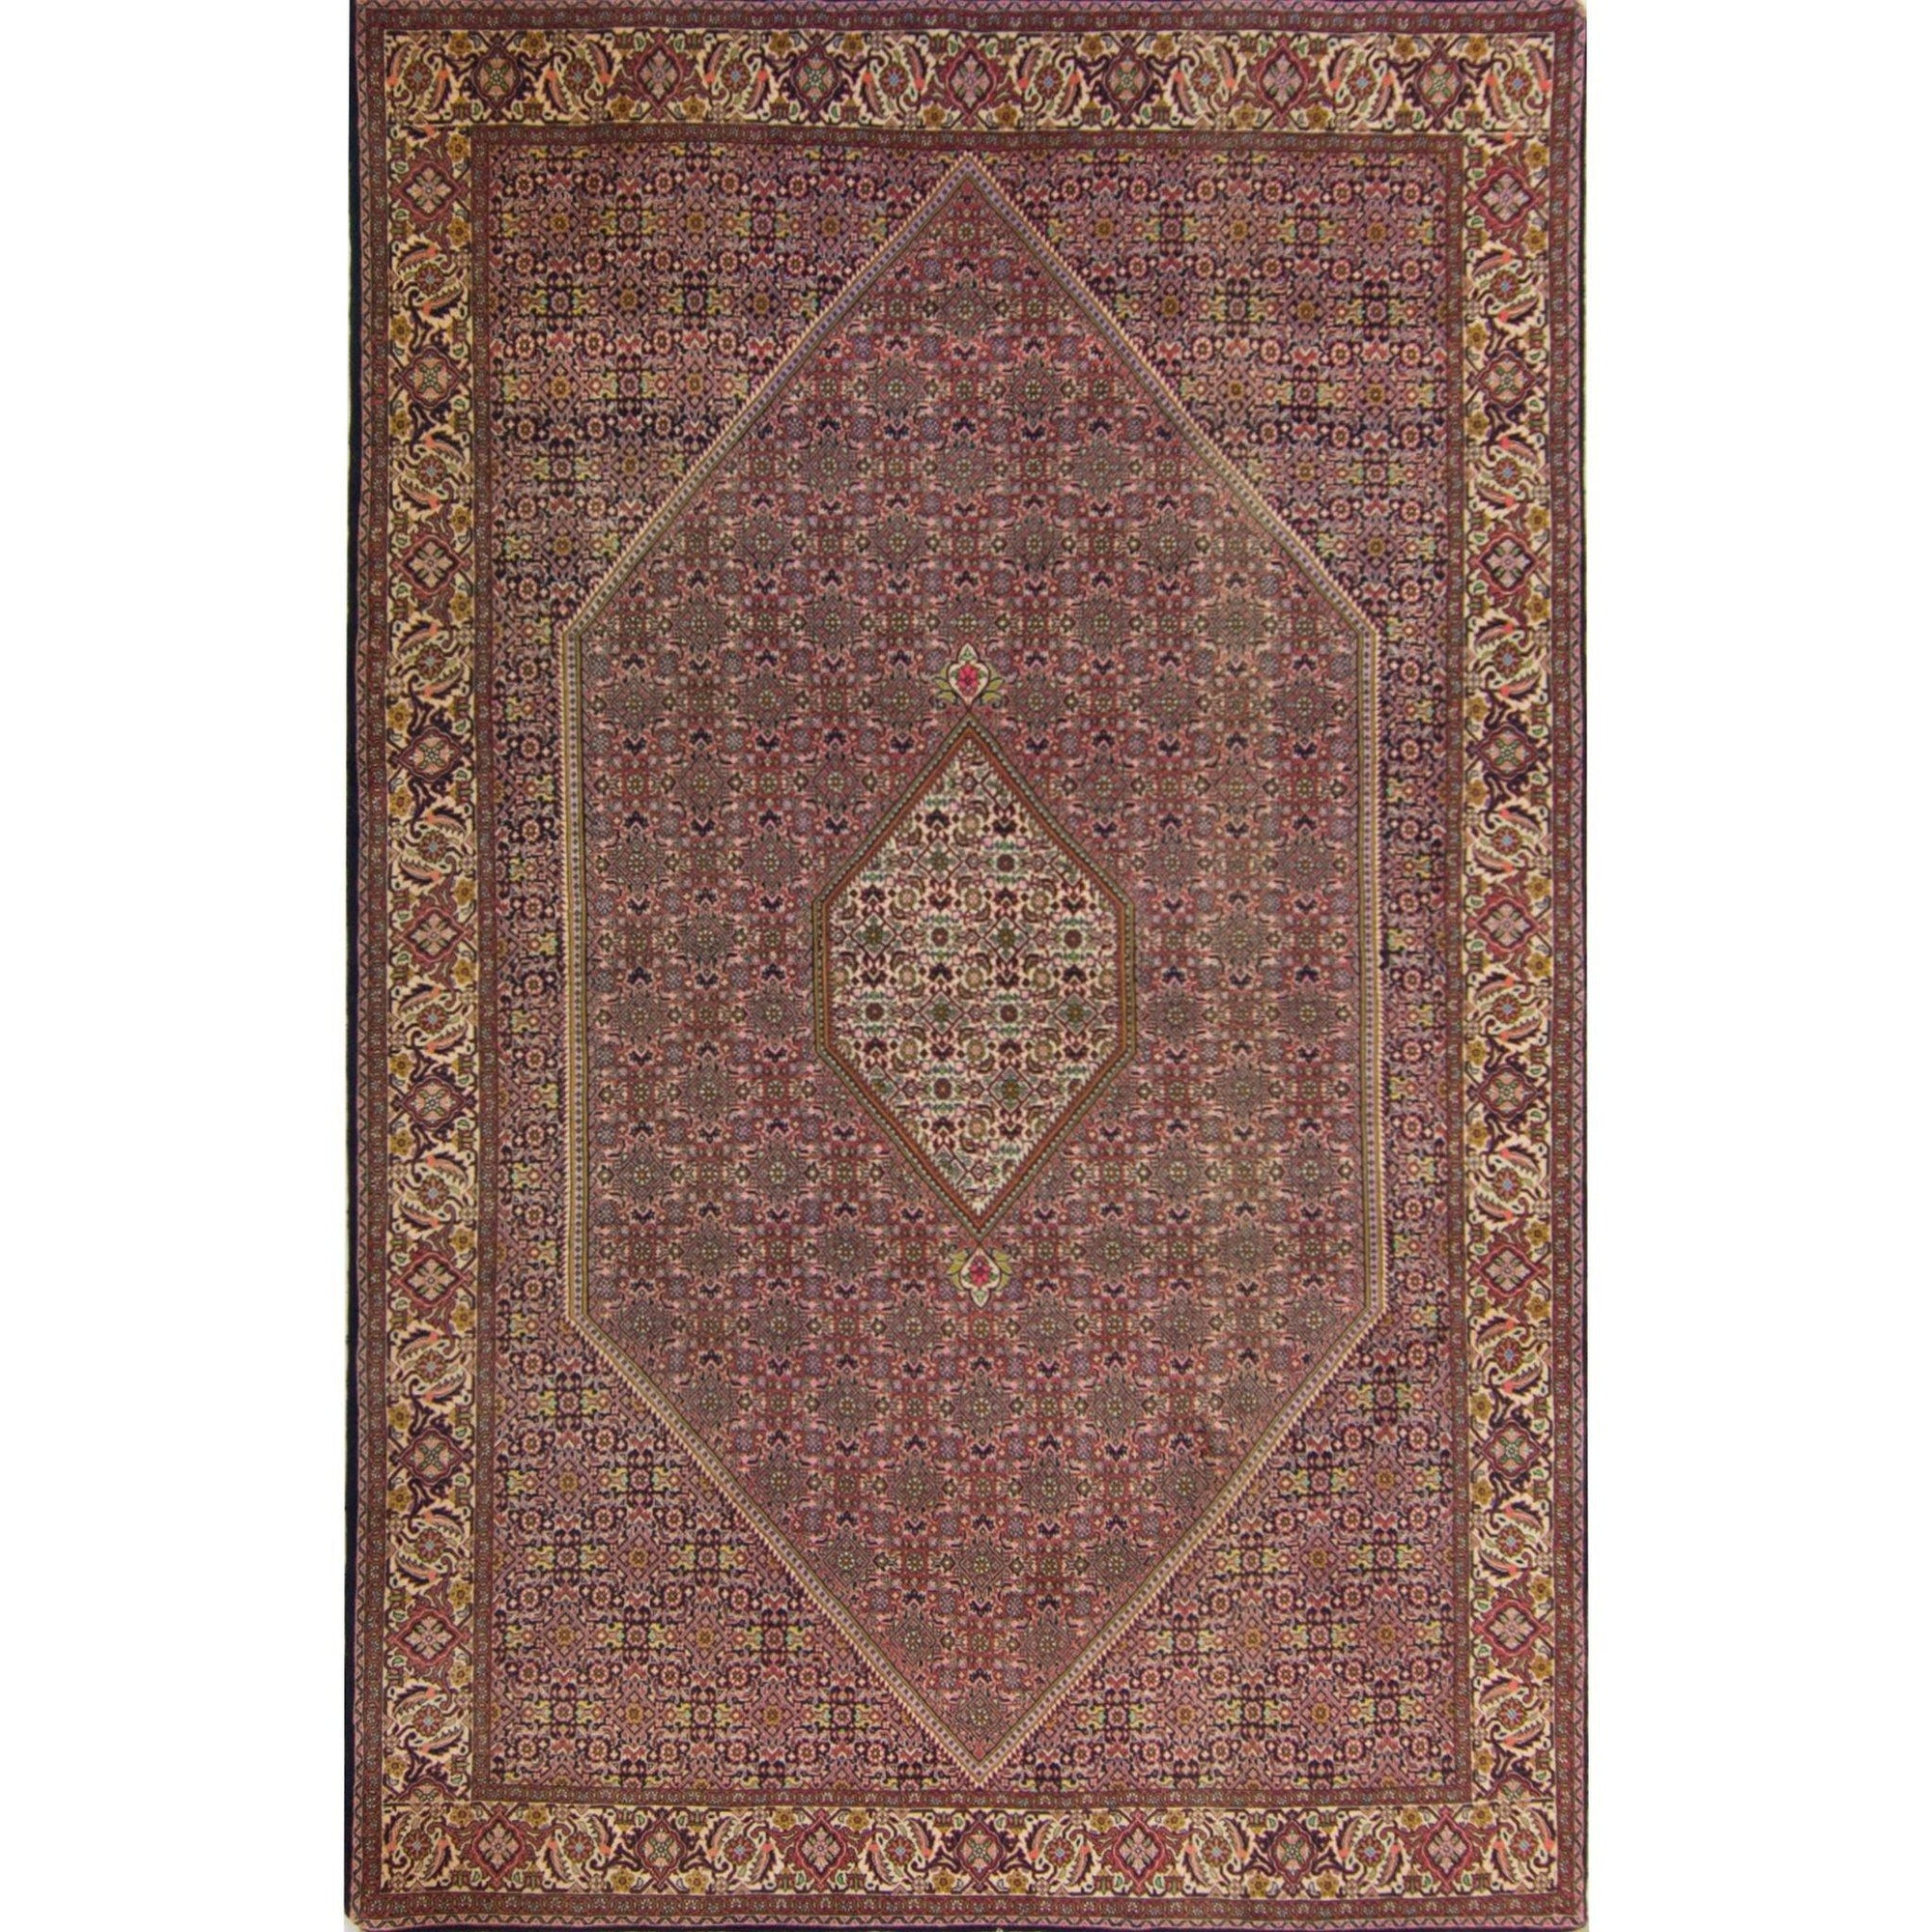 Super Fine Hand-knotted Persian Wool Bijar Rug Persian-Rug | House-of-Haghi | NewMarket | Auckland | NZ | Handmade Persian Rugs | Hand Knotted Persian Rugs